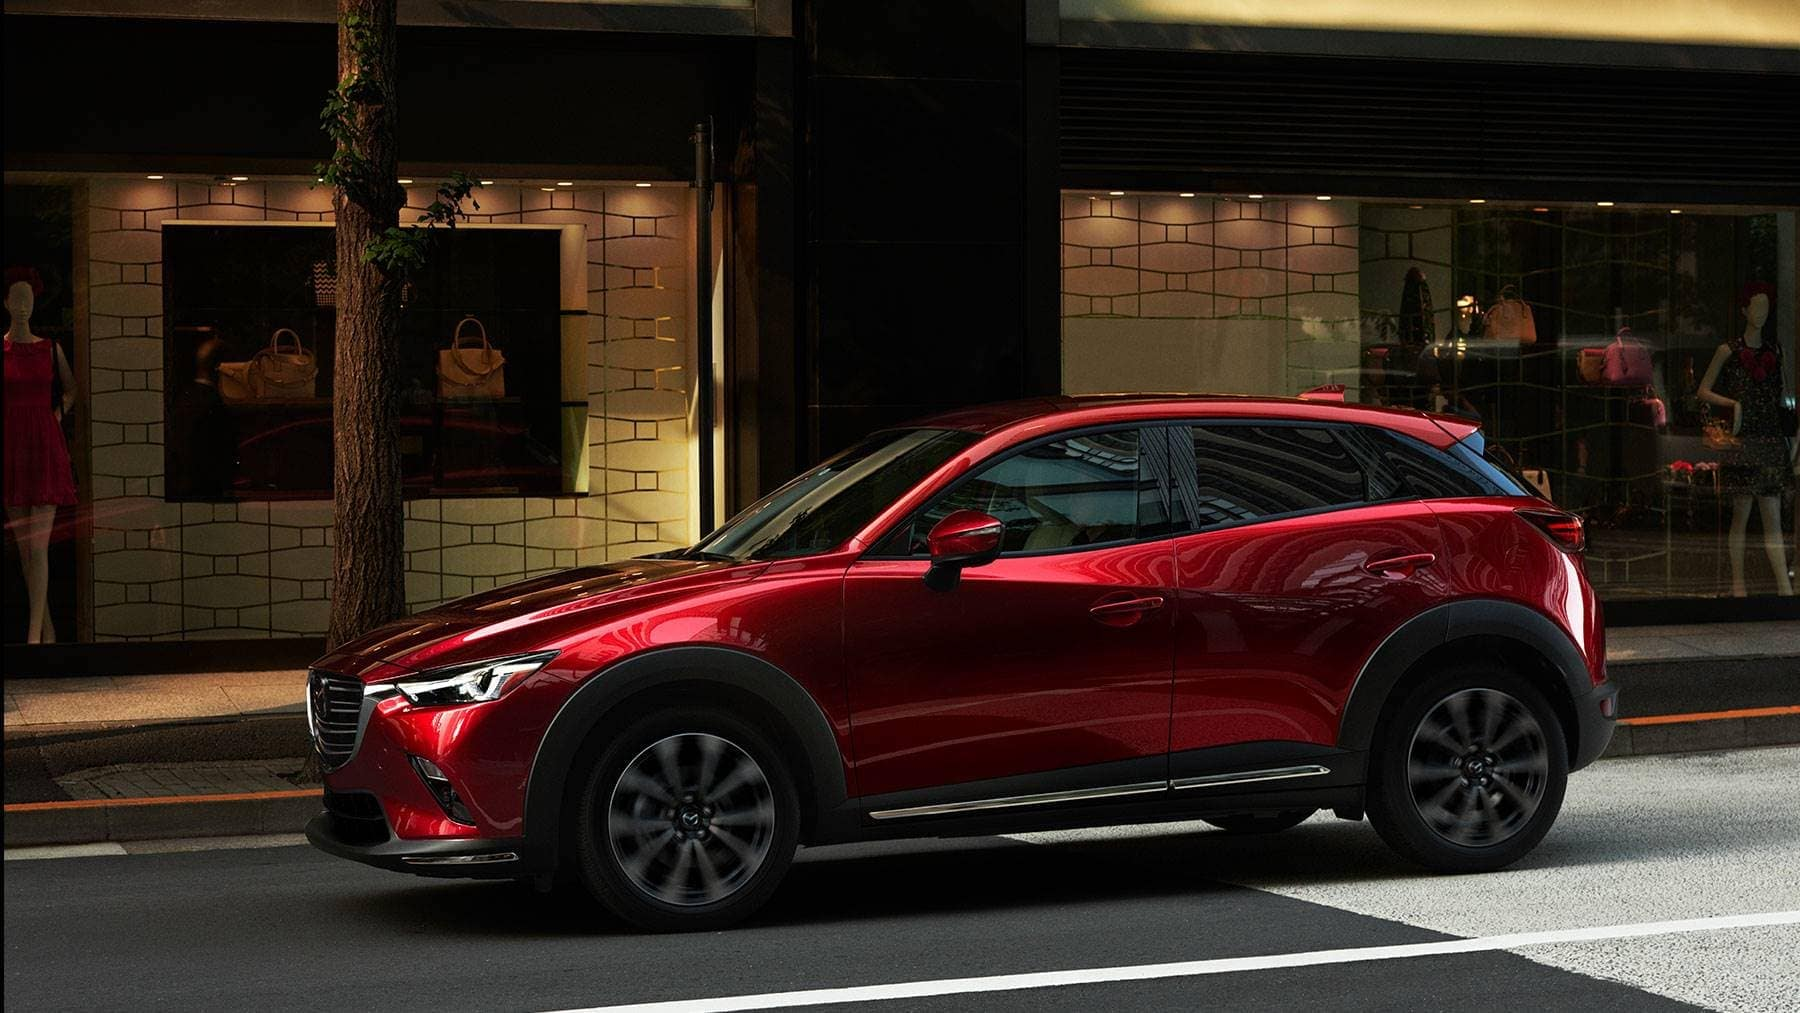 2019 Mazda CX-3 Parked on Street